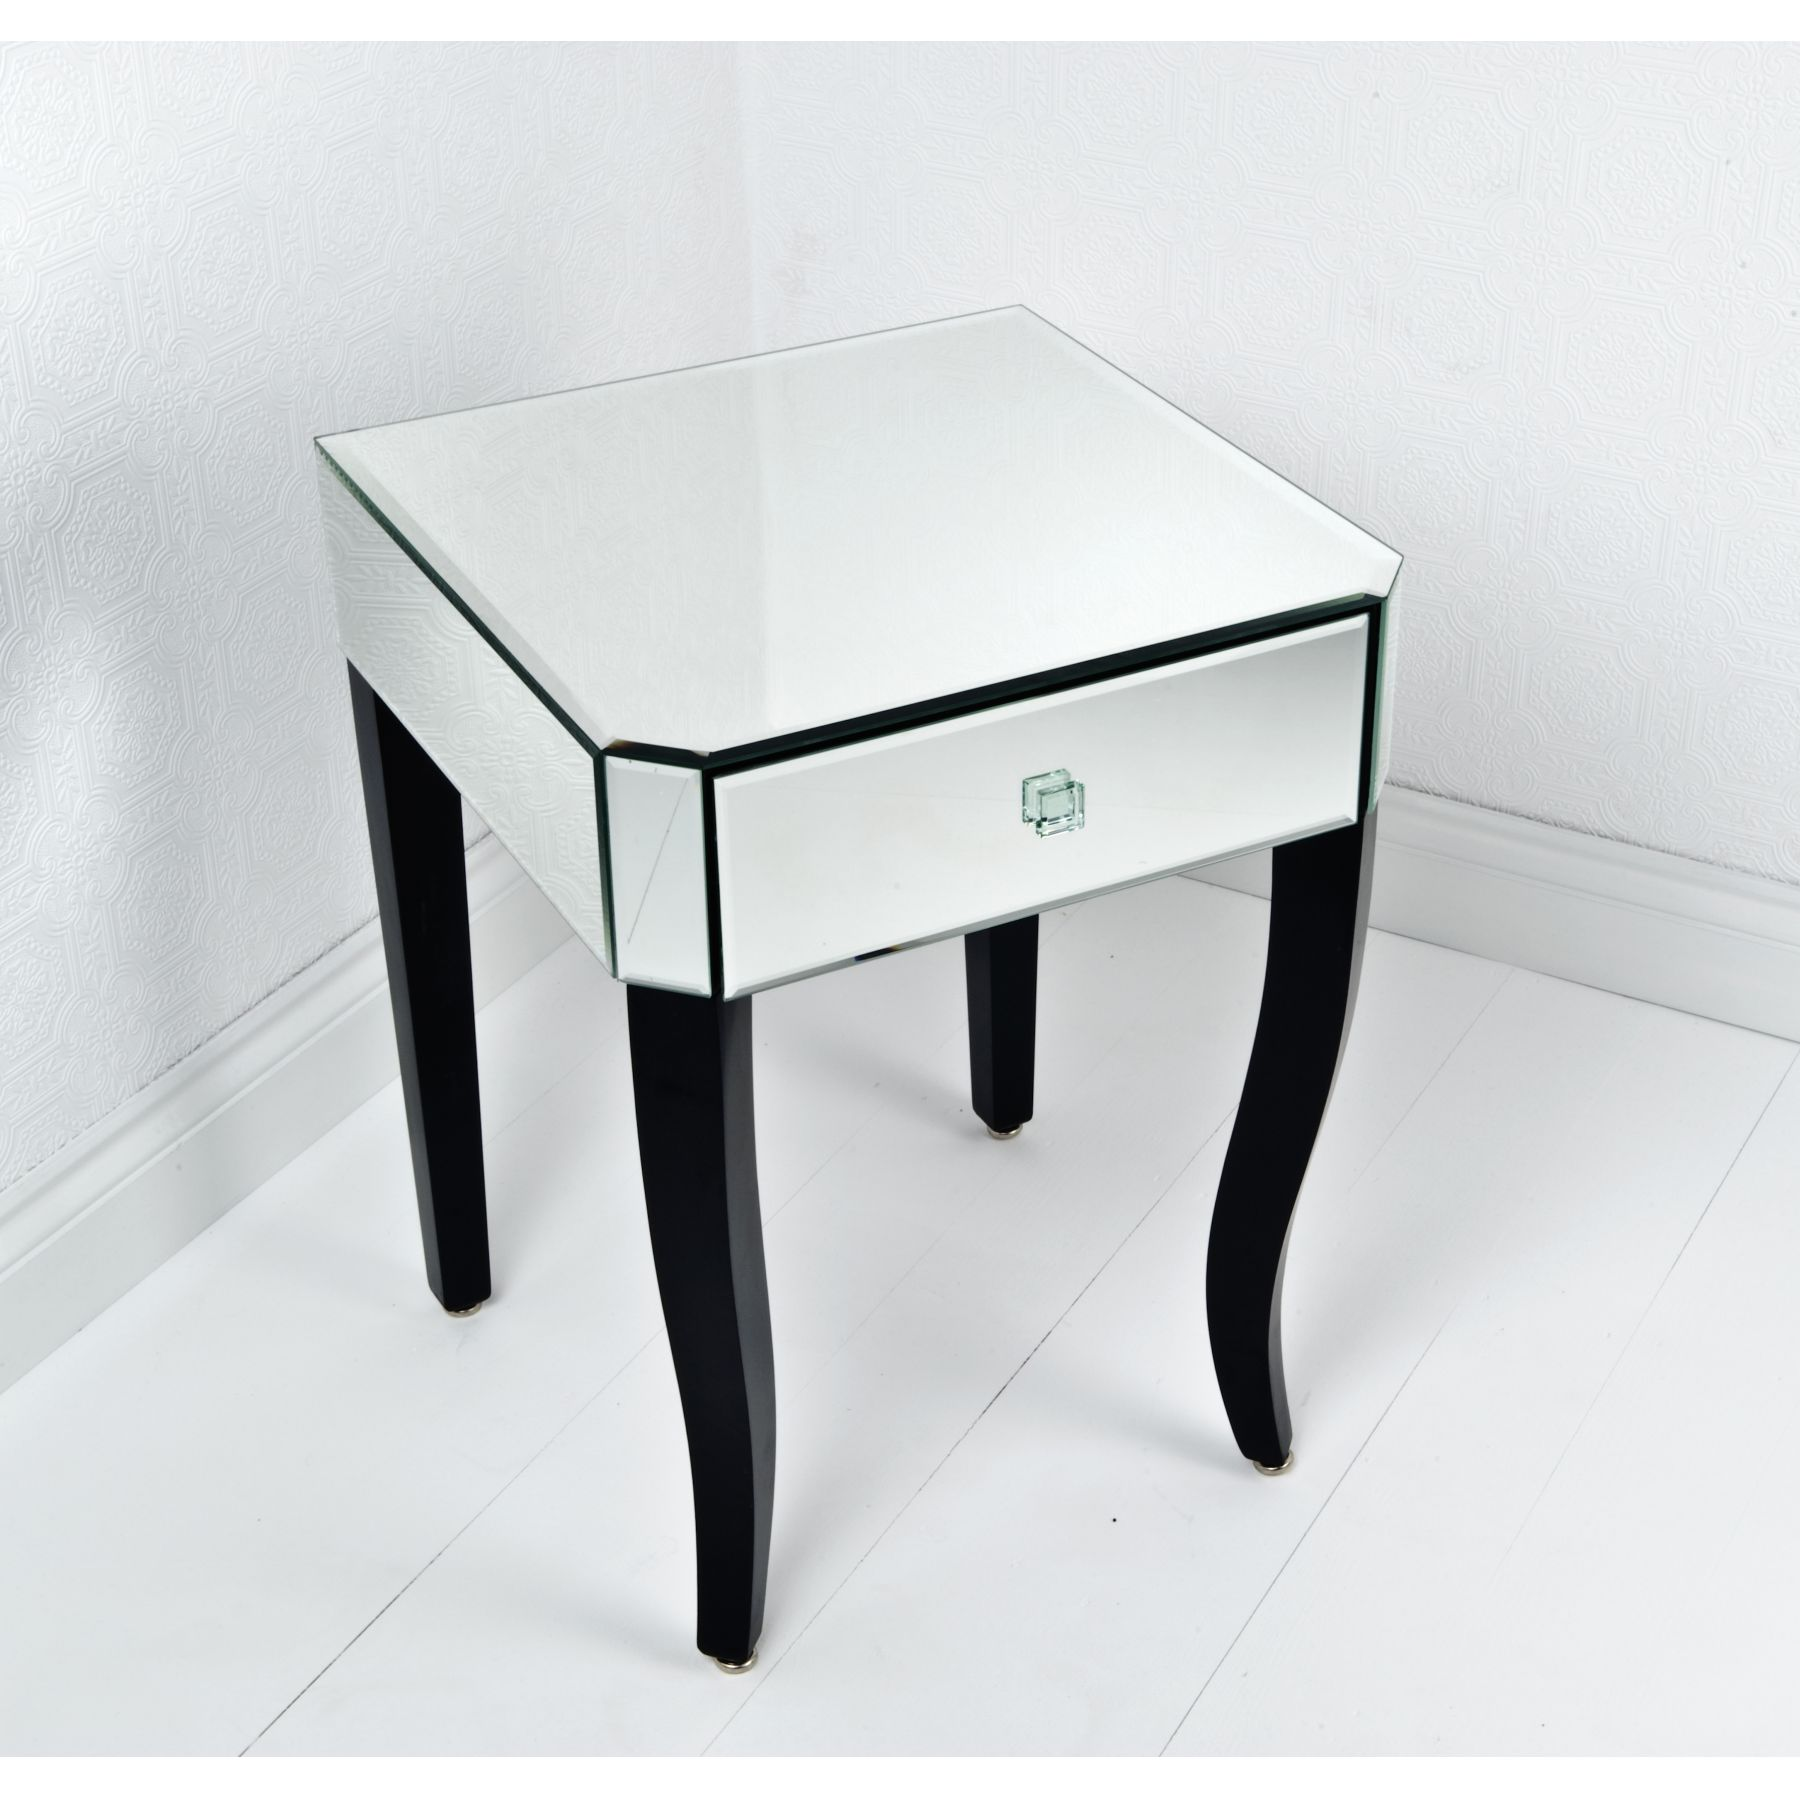 probably outrageous real end table white with dark top mira road modern square mirrored bedside drawer and glass plus furniture wooden legs painted black color ideas round